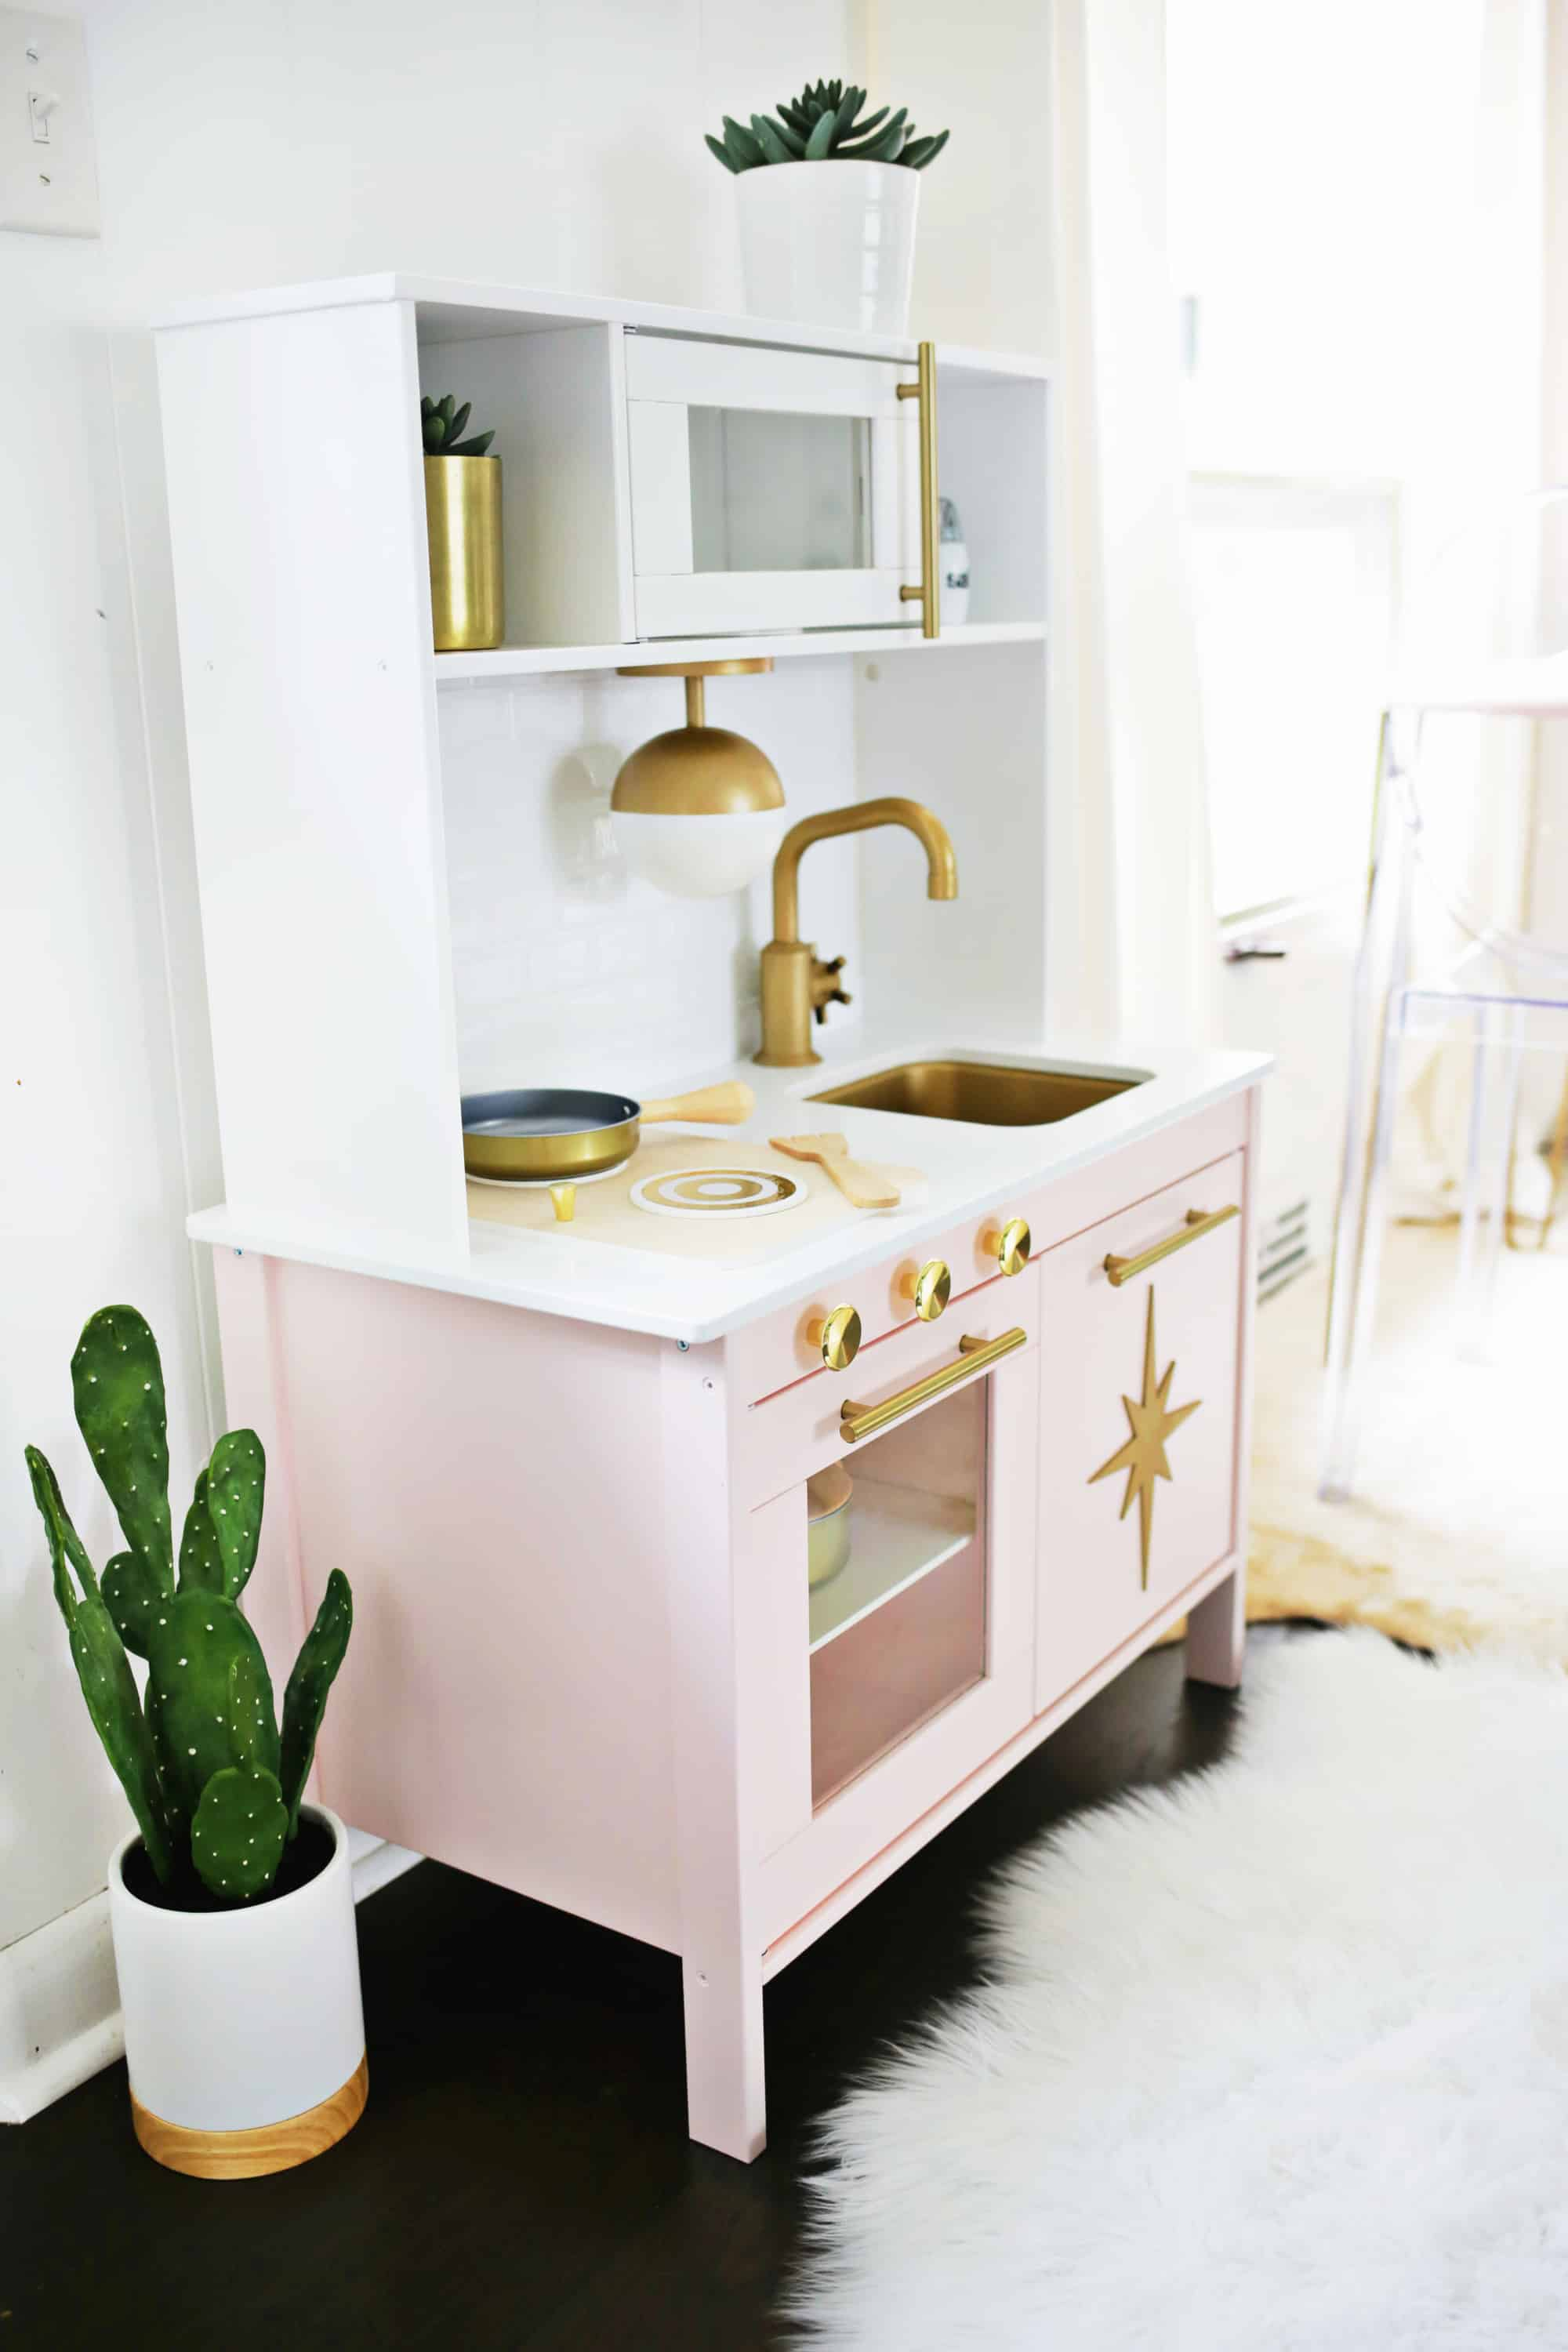 play kitchen ikea lights for mid century modern hack a beautiful mess omg it s juuuuust too much in the best possible way i love how totally fits with rest of our decor and looks so luxe as well